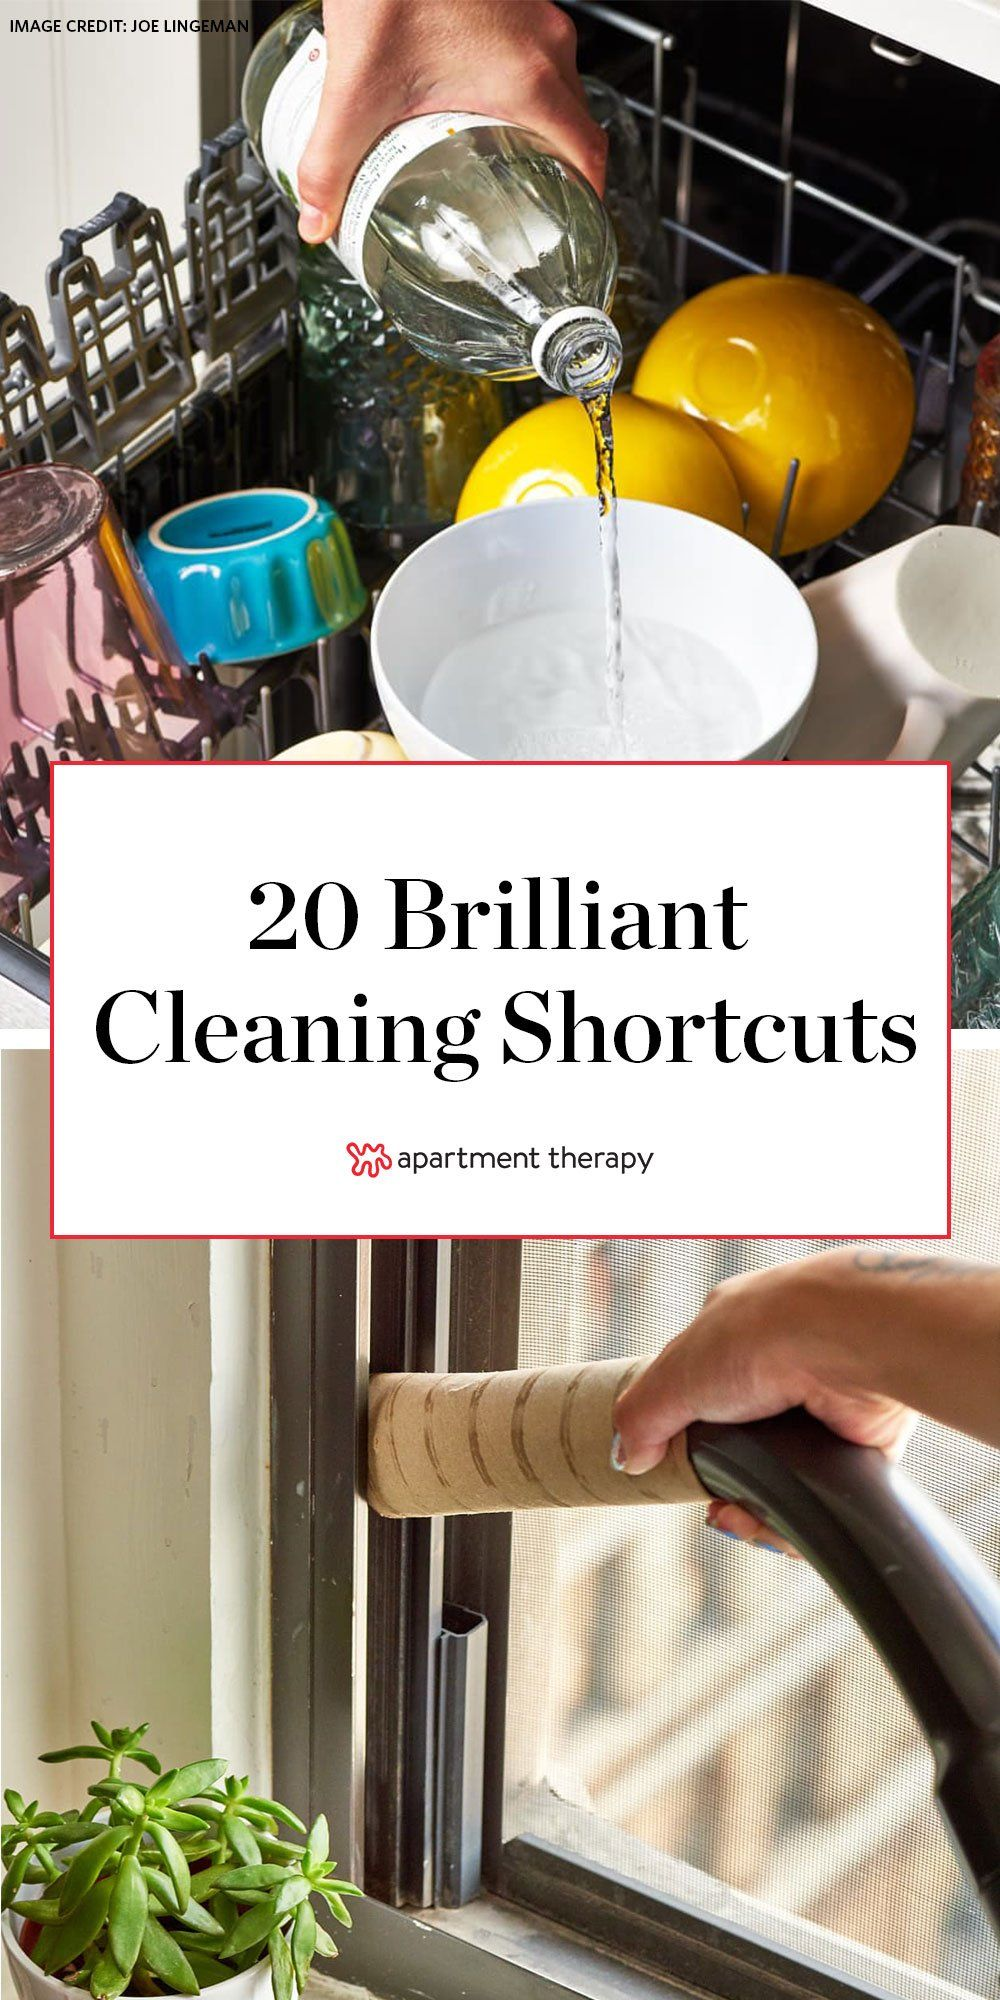 20 Brilliant Cleaning Shortcuts